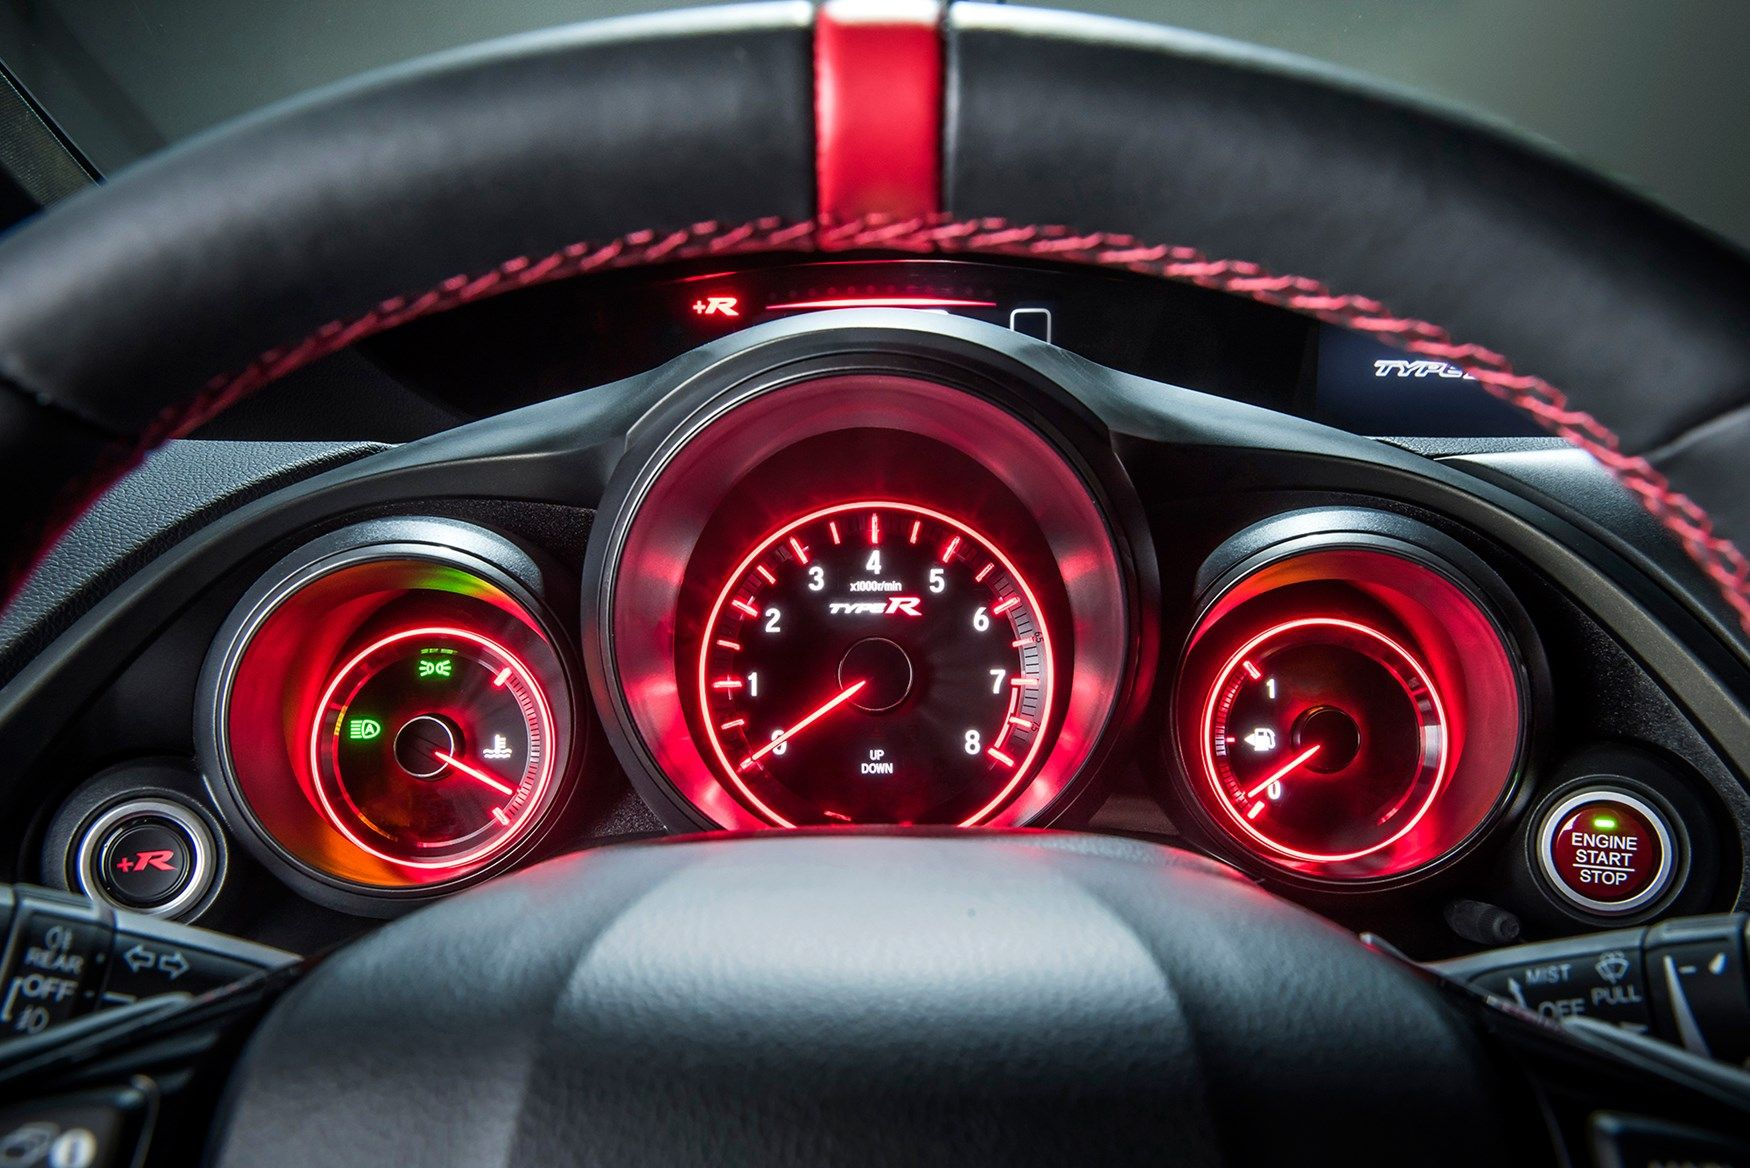 Awesome New Honda Civic Type R To Boast 167mph Top Speed! By CAR Magazine